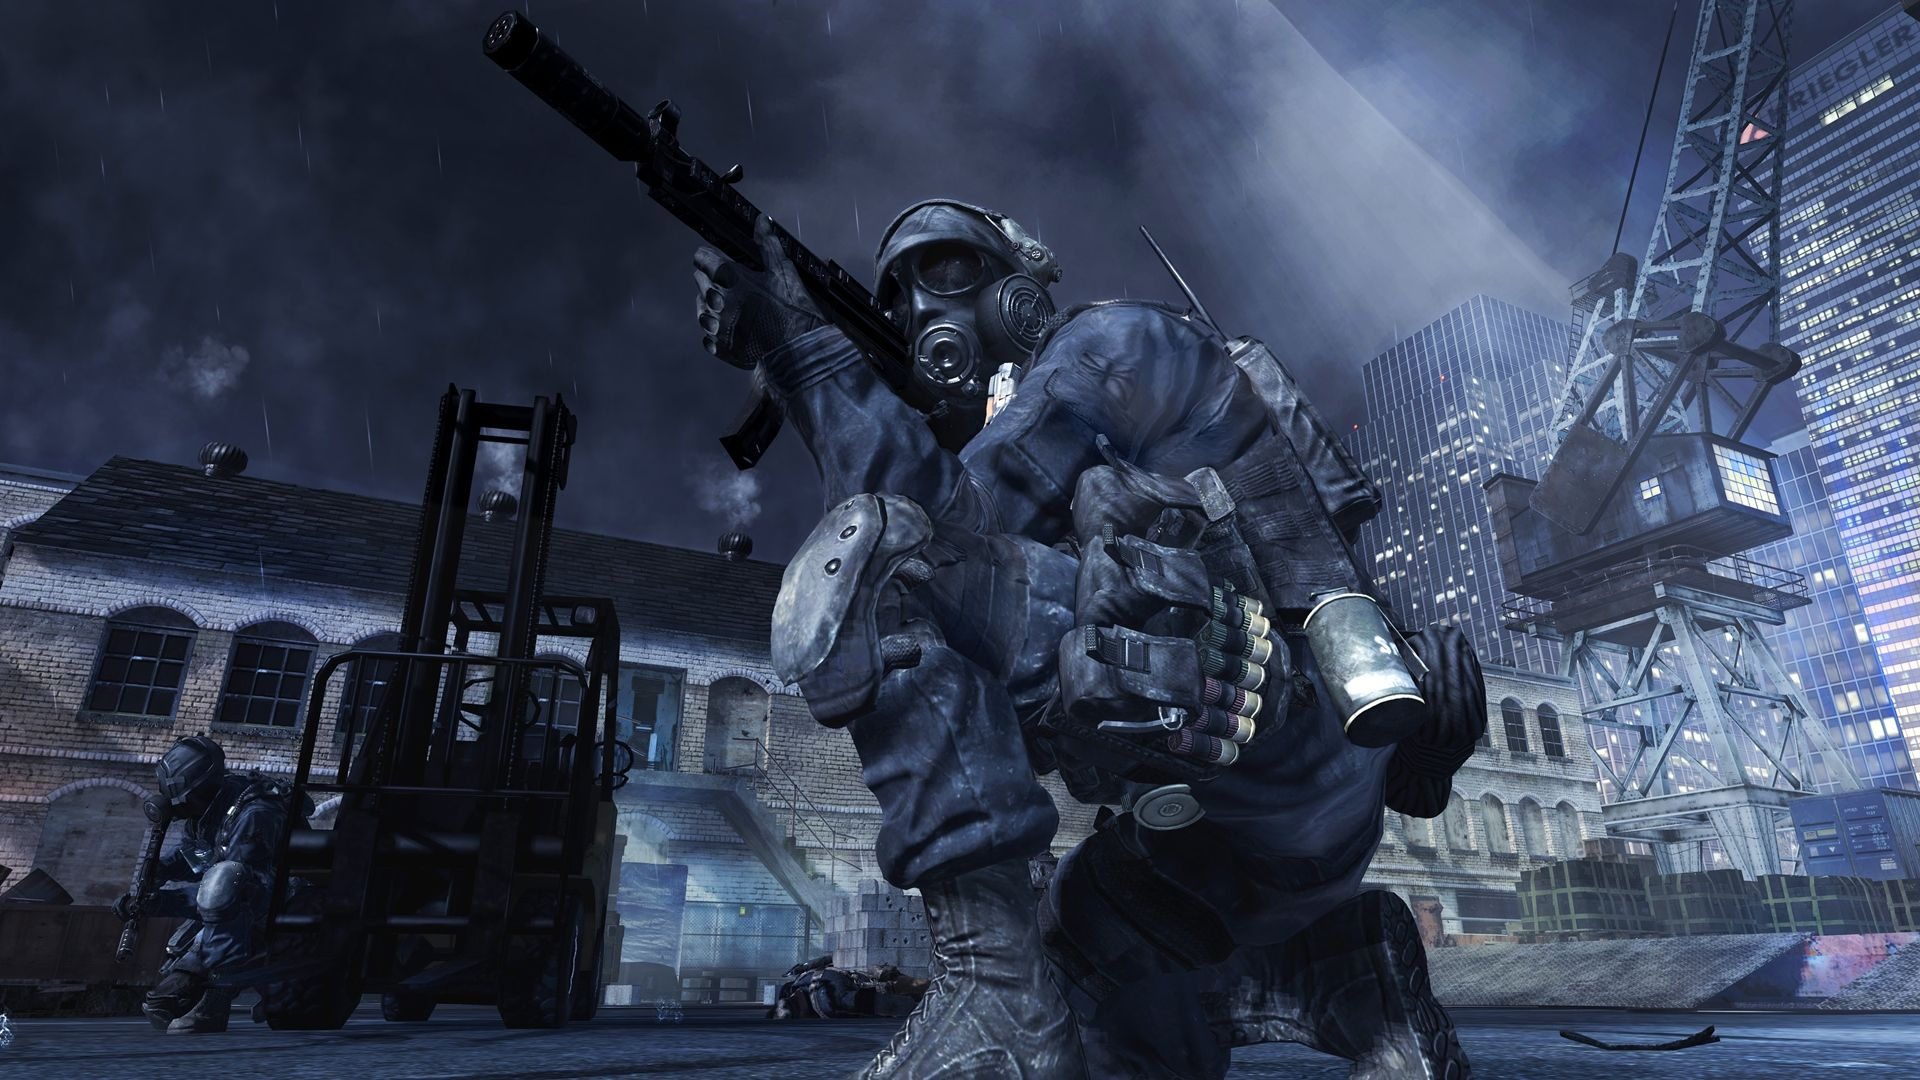 скачать call of duty modern warfare 3 с торрента